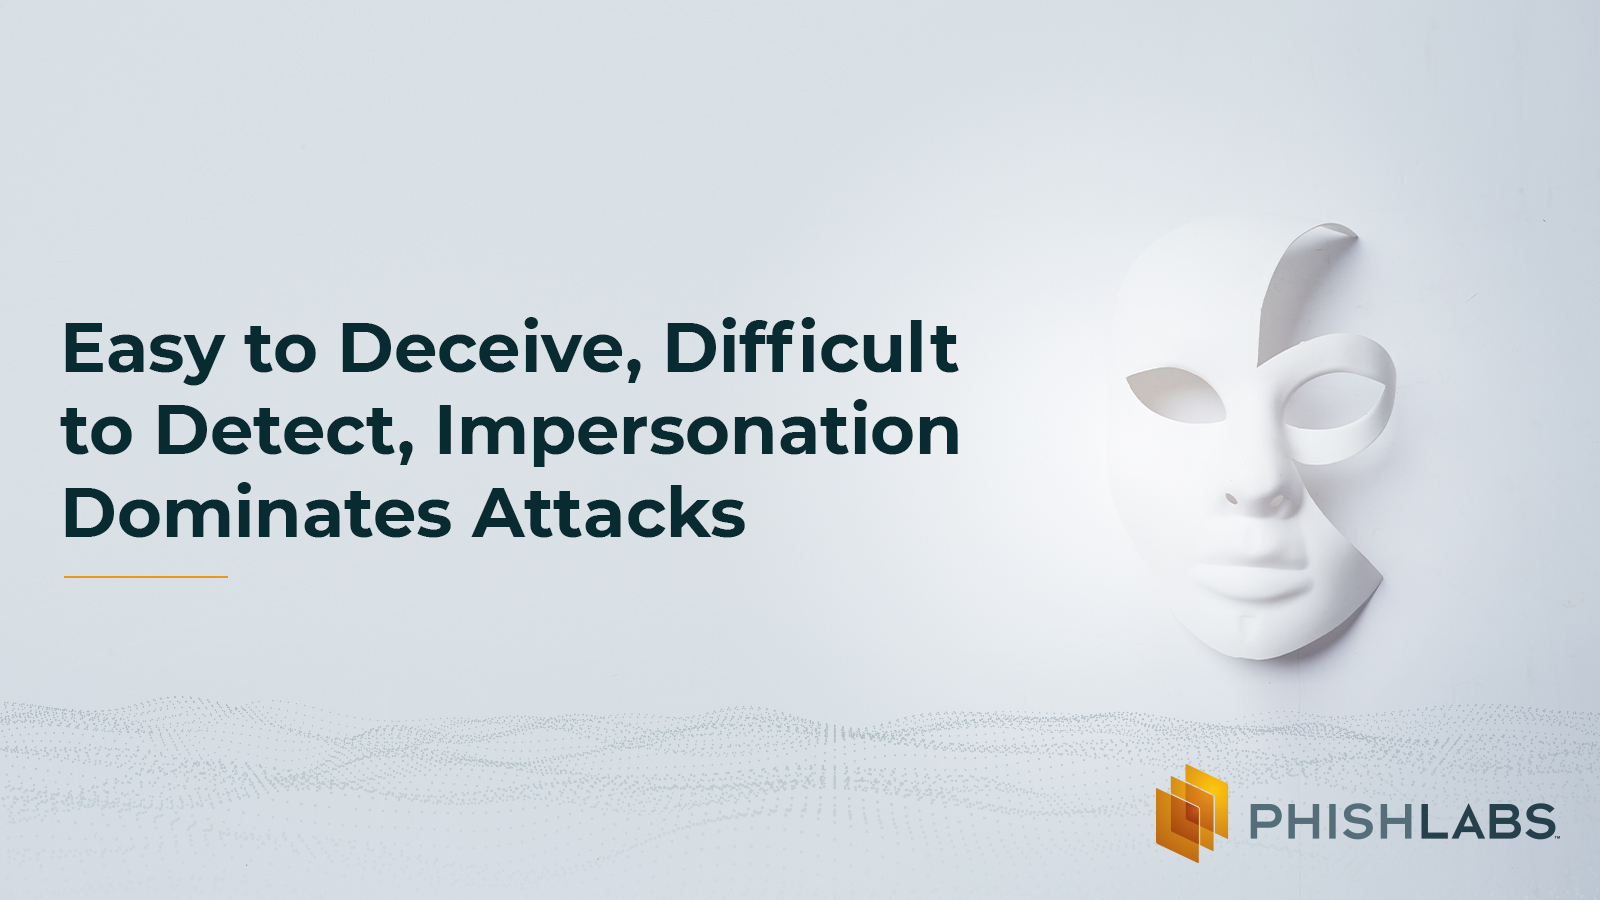 Easy to Deceive, Difficult to Detect, Impersonation Dominates Attacks